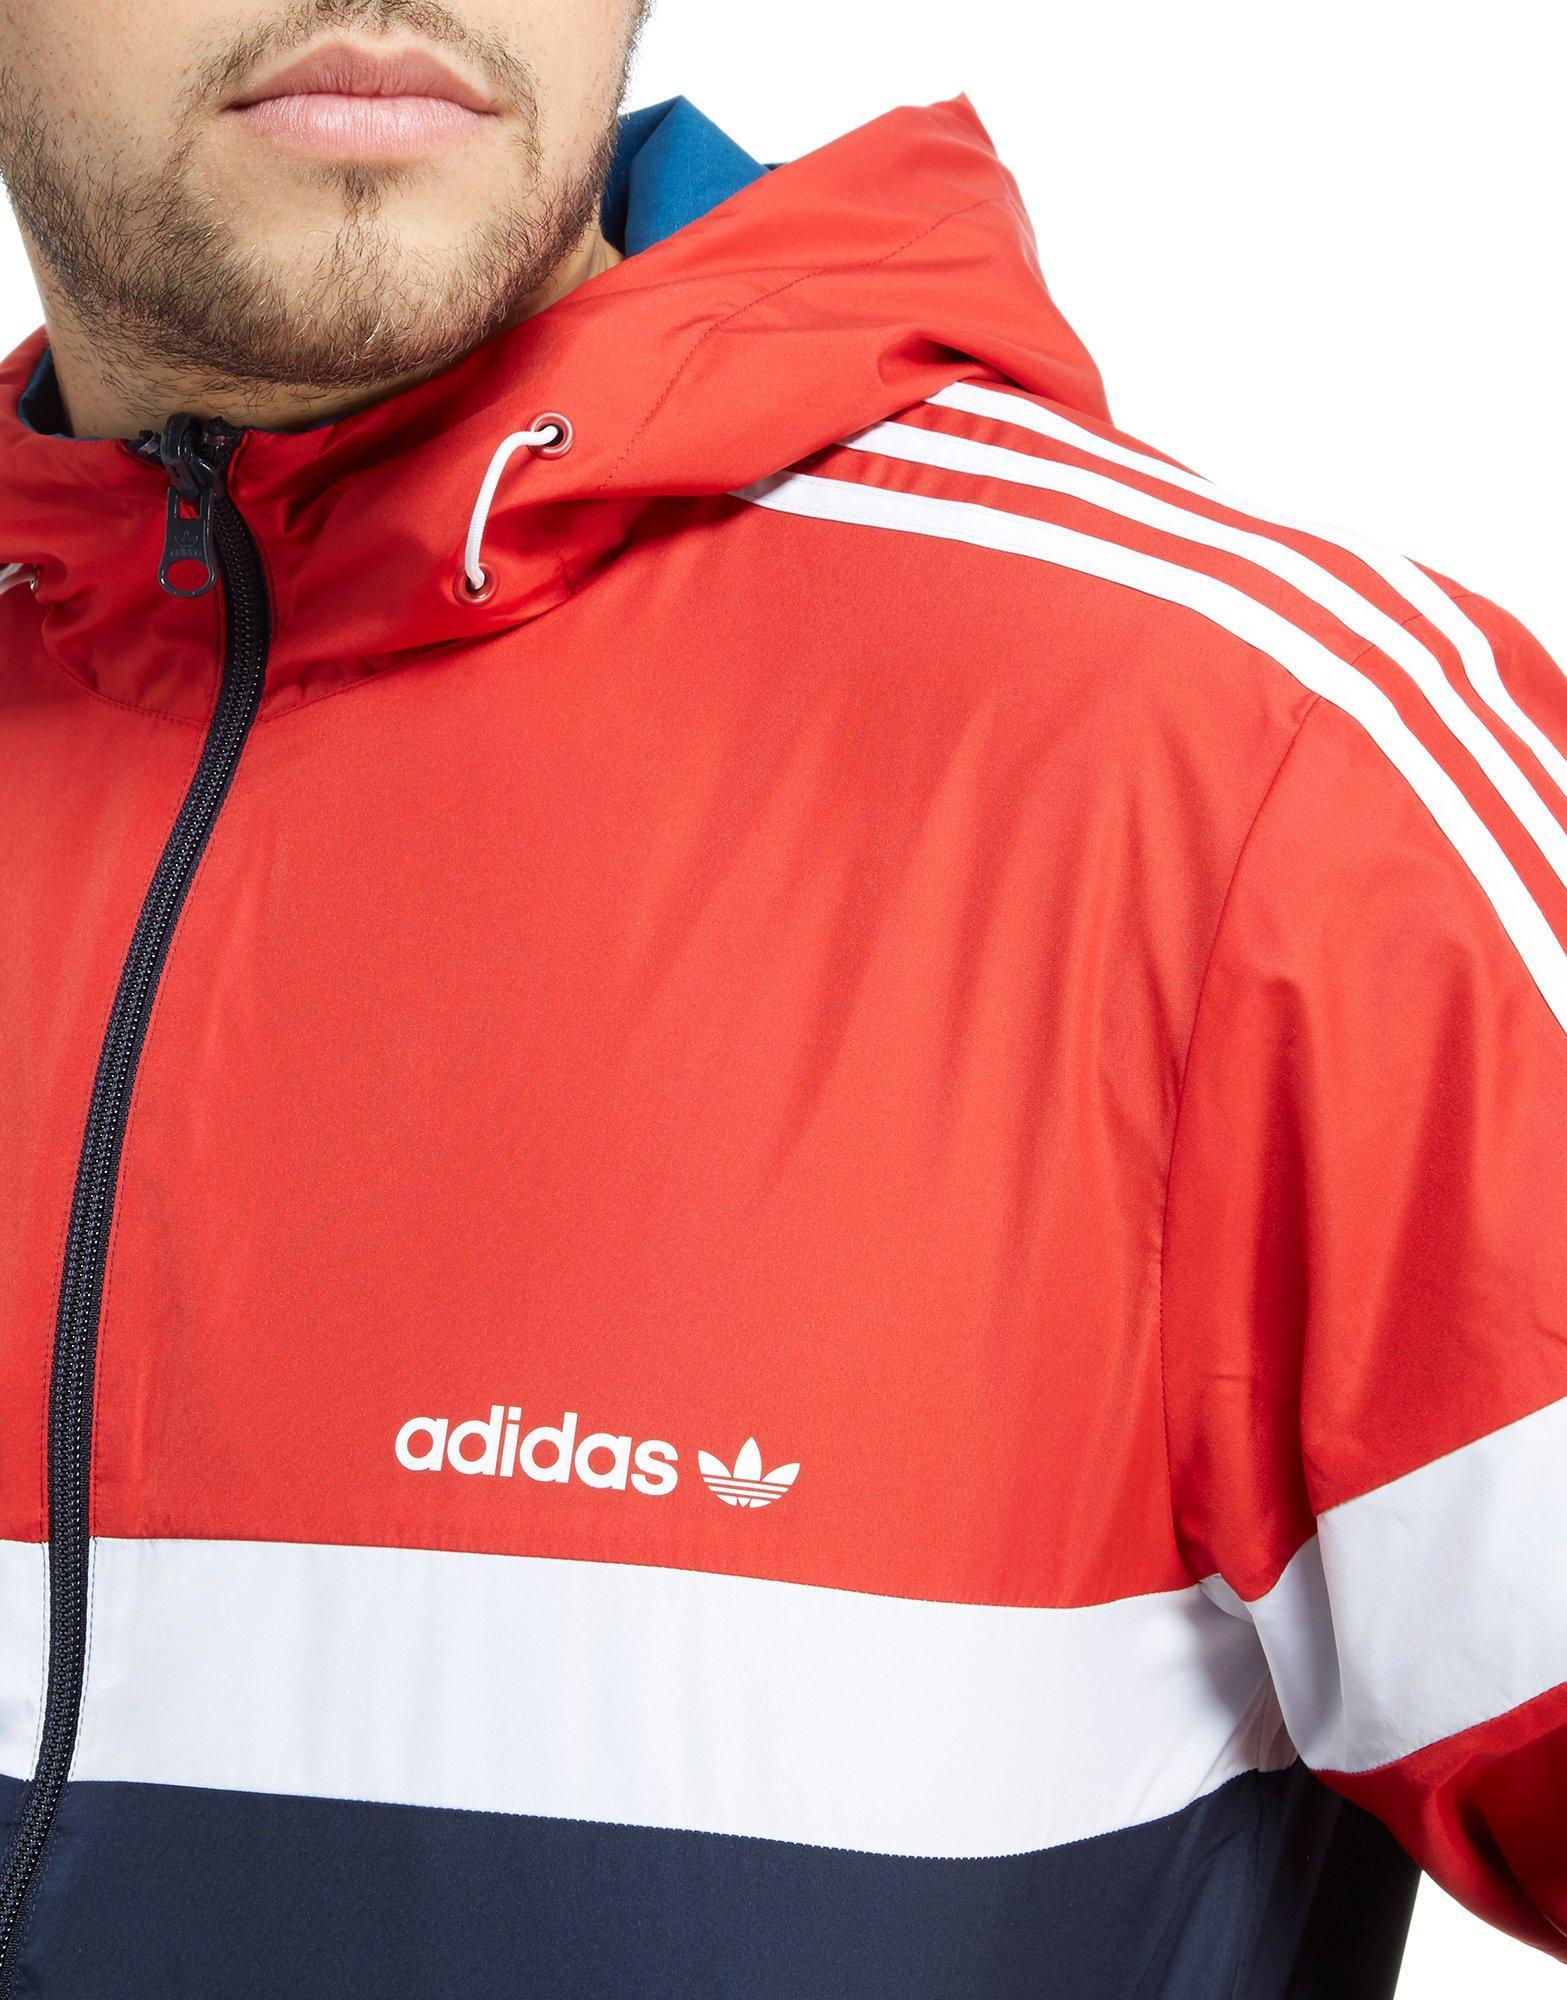 adidas Originals Synthetic Itasca Collection Reversible Windbreaker Jacket in Scarlet/Navy/ White (Blue) for Men